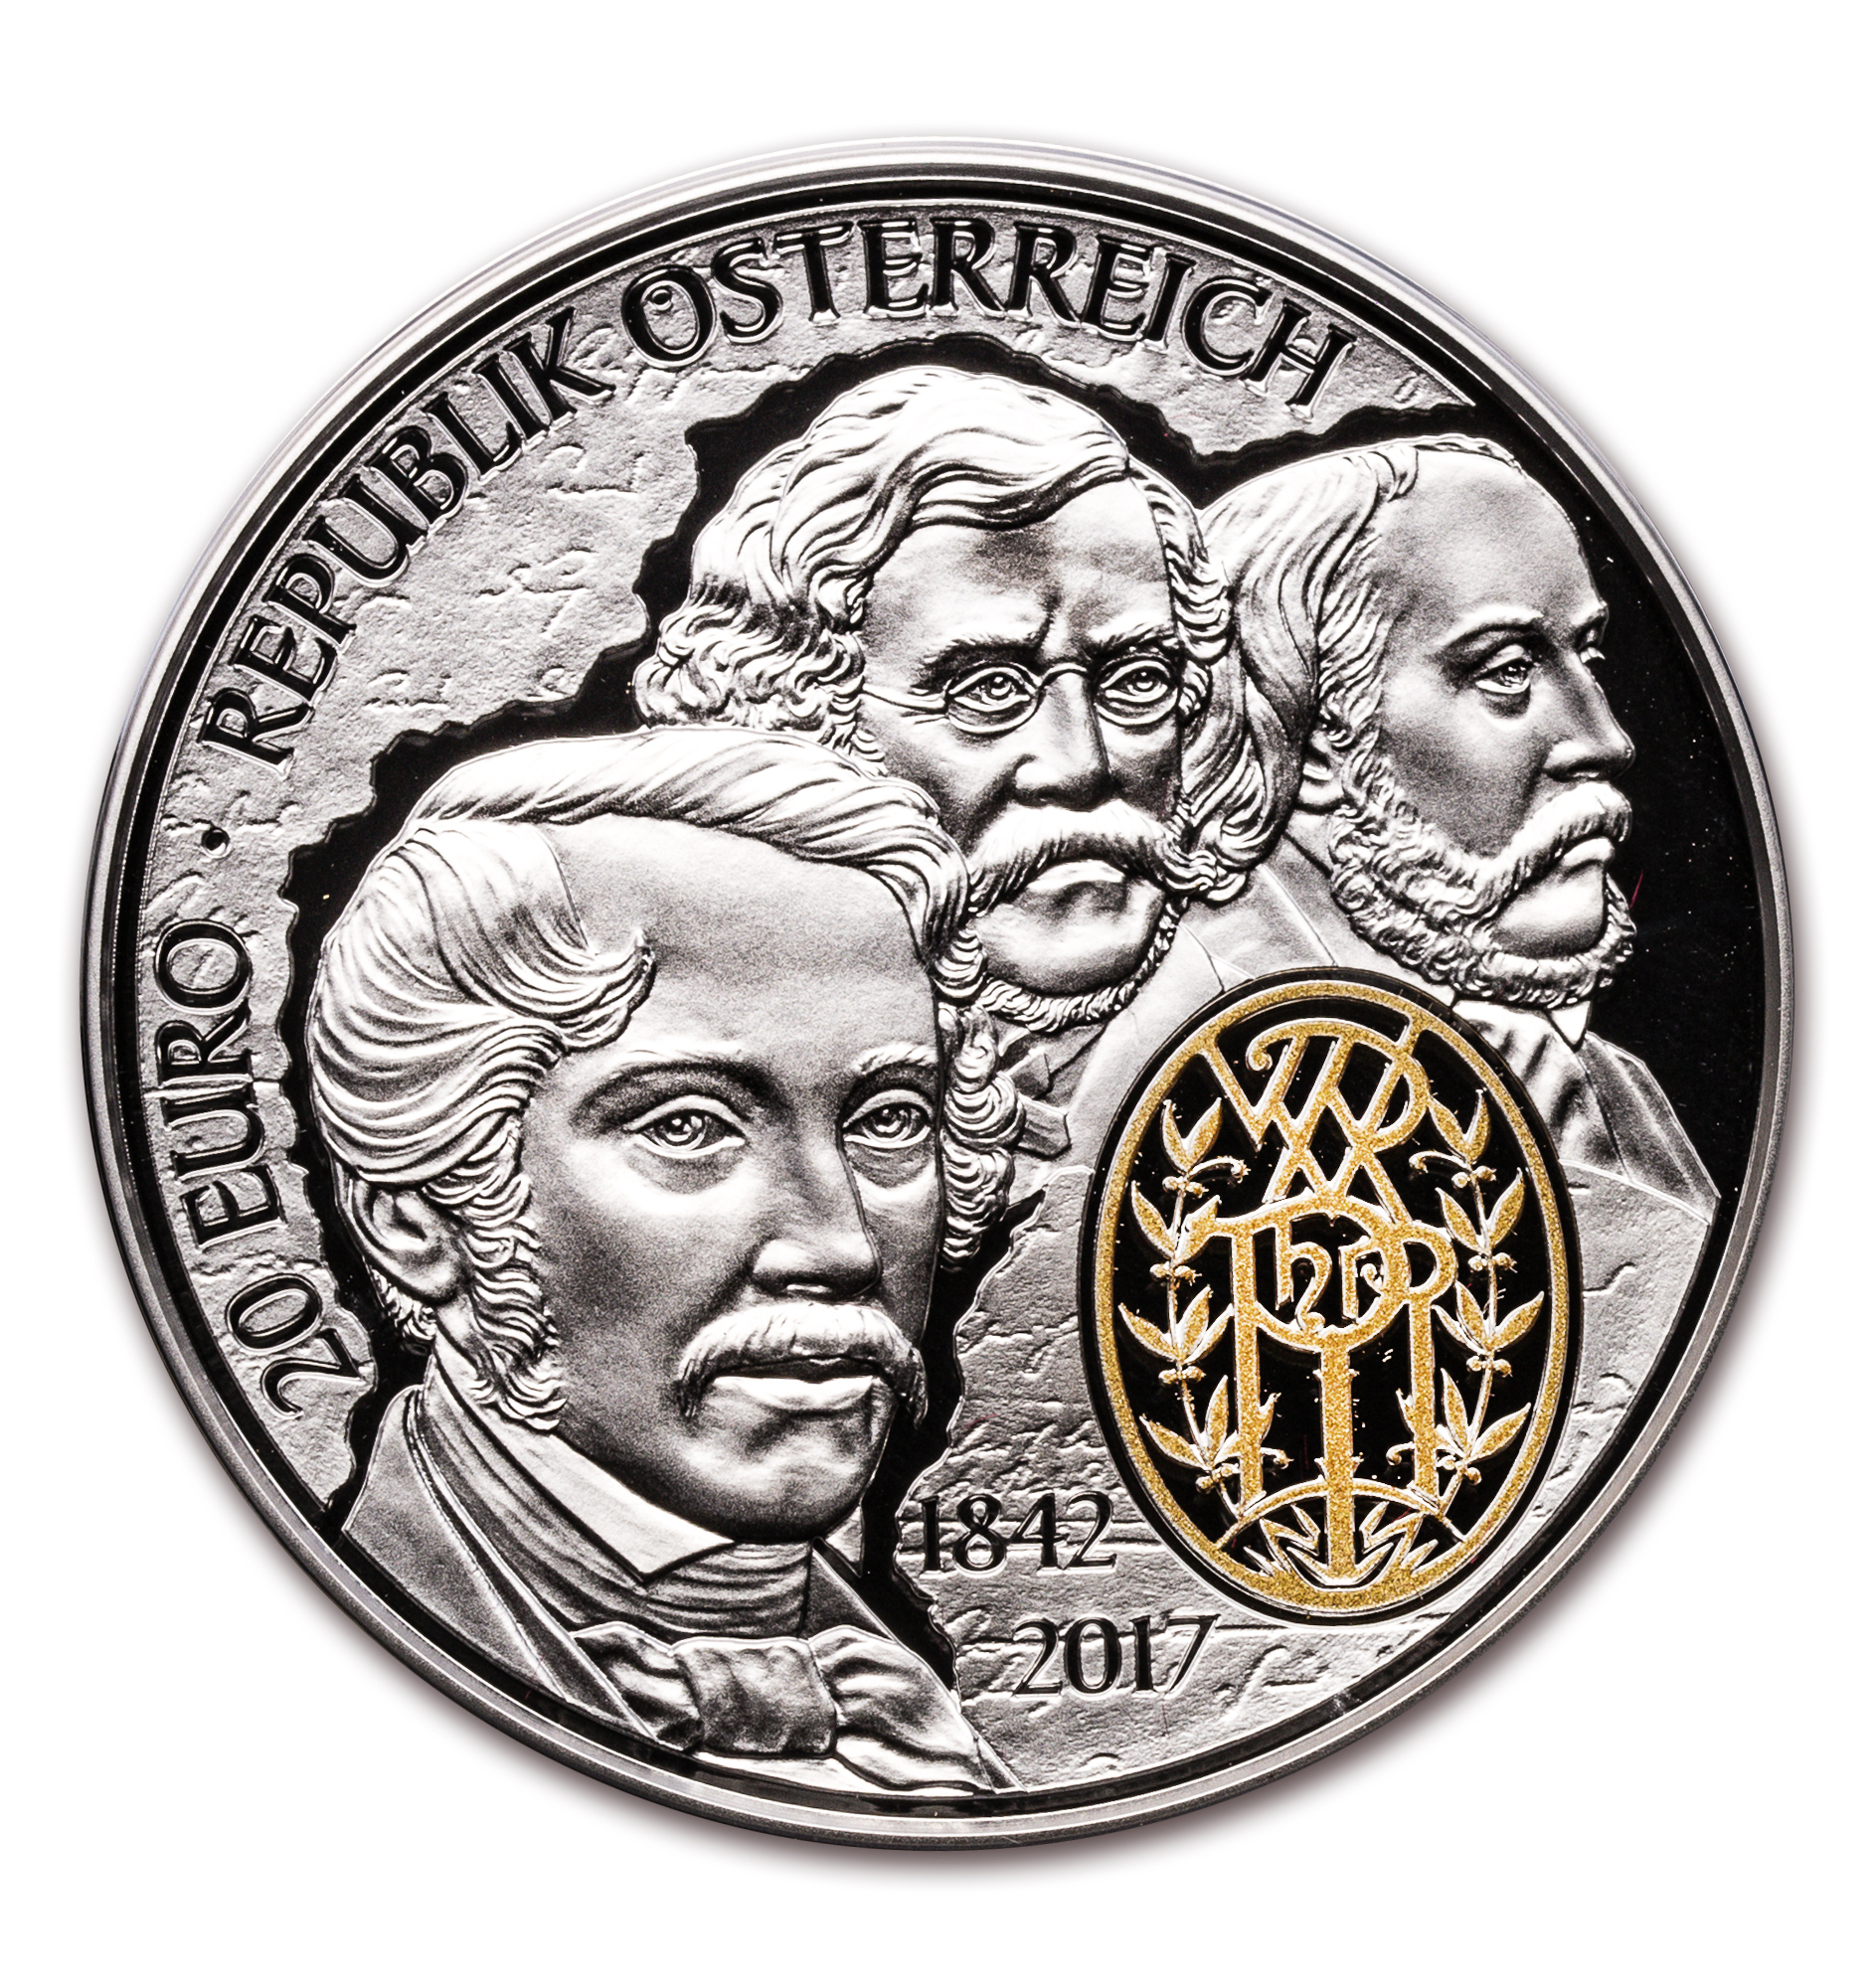 2017 Austria Prf Silver €20 175th Ann of Philharmonic Orchestra